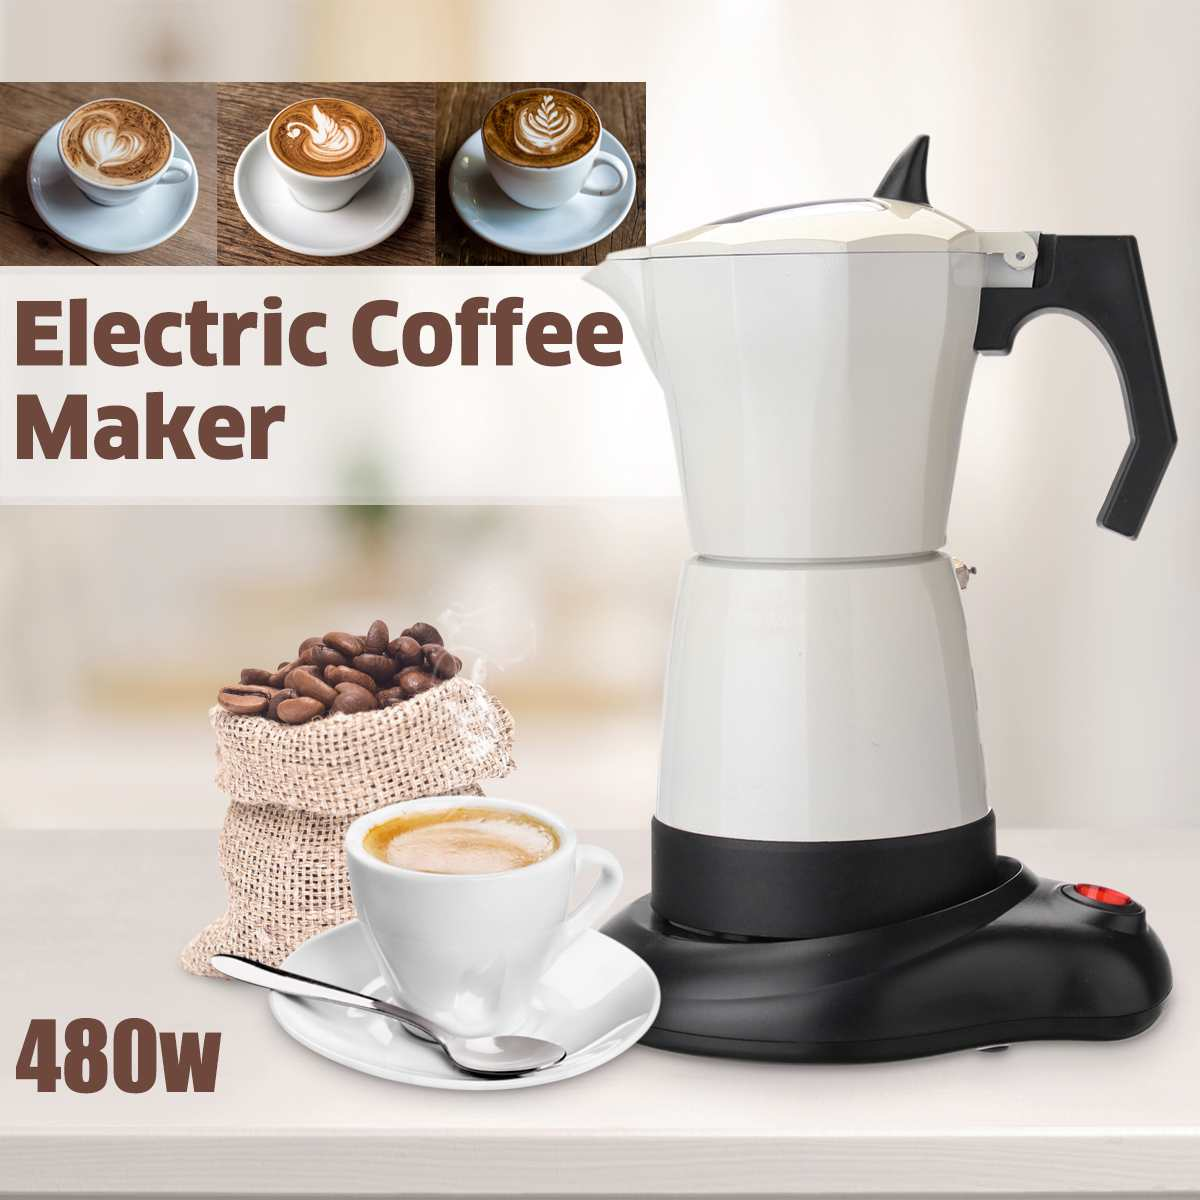 480W 6 Cups Electric Tea Coffee Maker Pot Espresso Machine Mocha Removable Coffee Kitchen Tool Home Office Easy To Clean|Coffee Makers| |  - title=